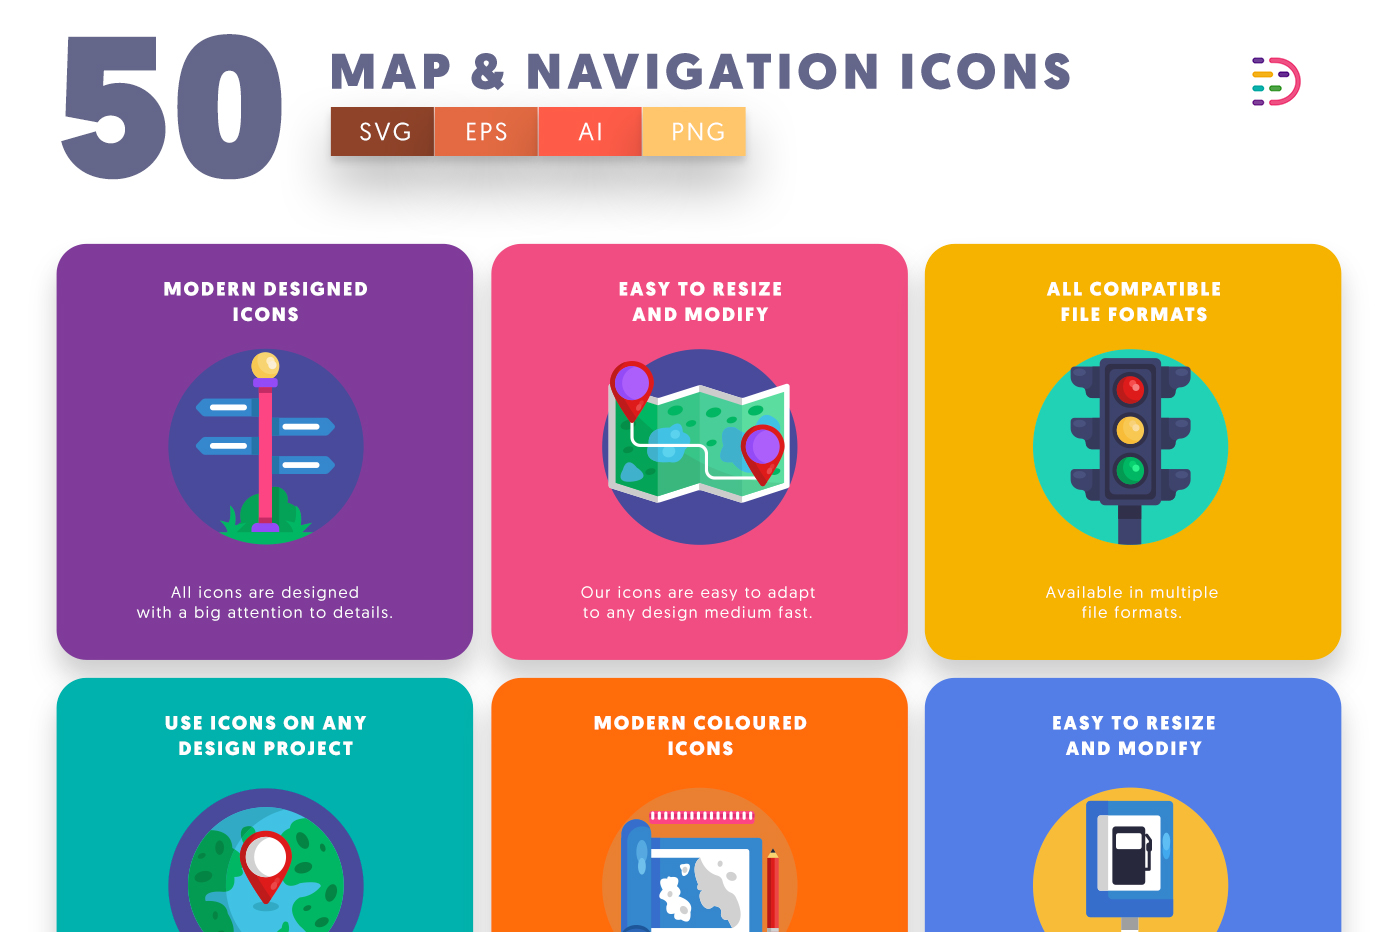 Full vector 50 Map & Navigation Icons